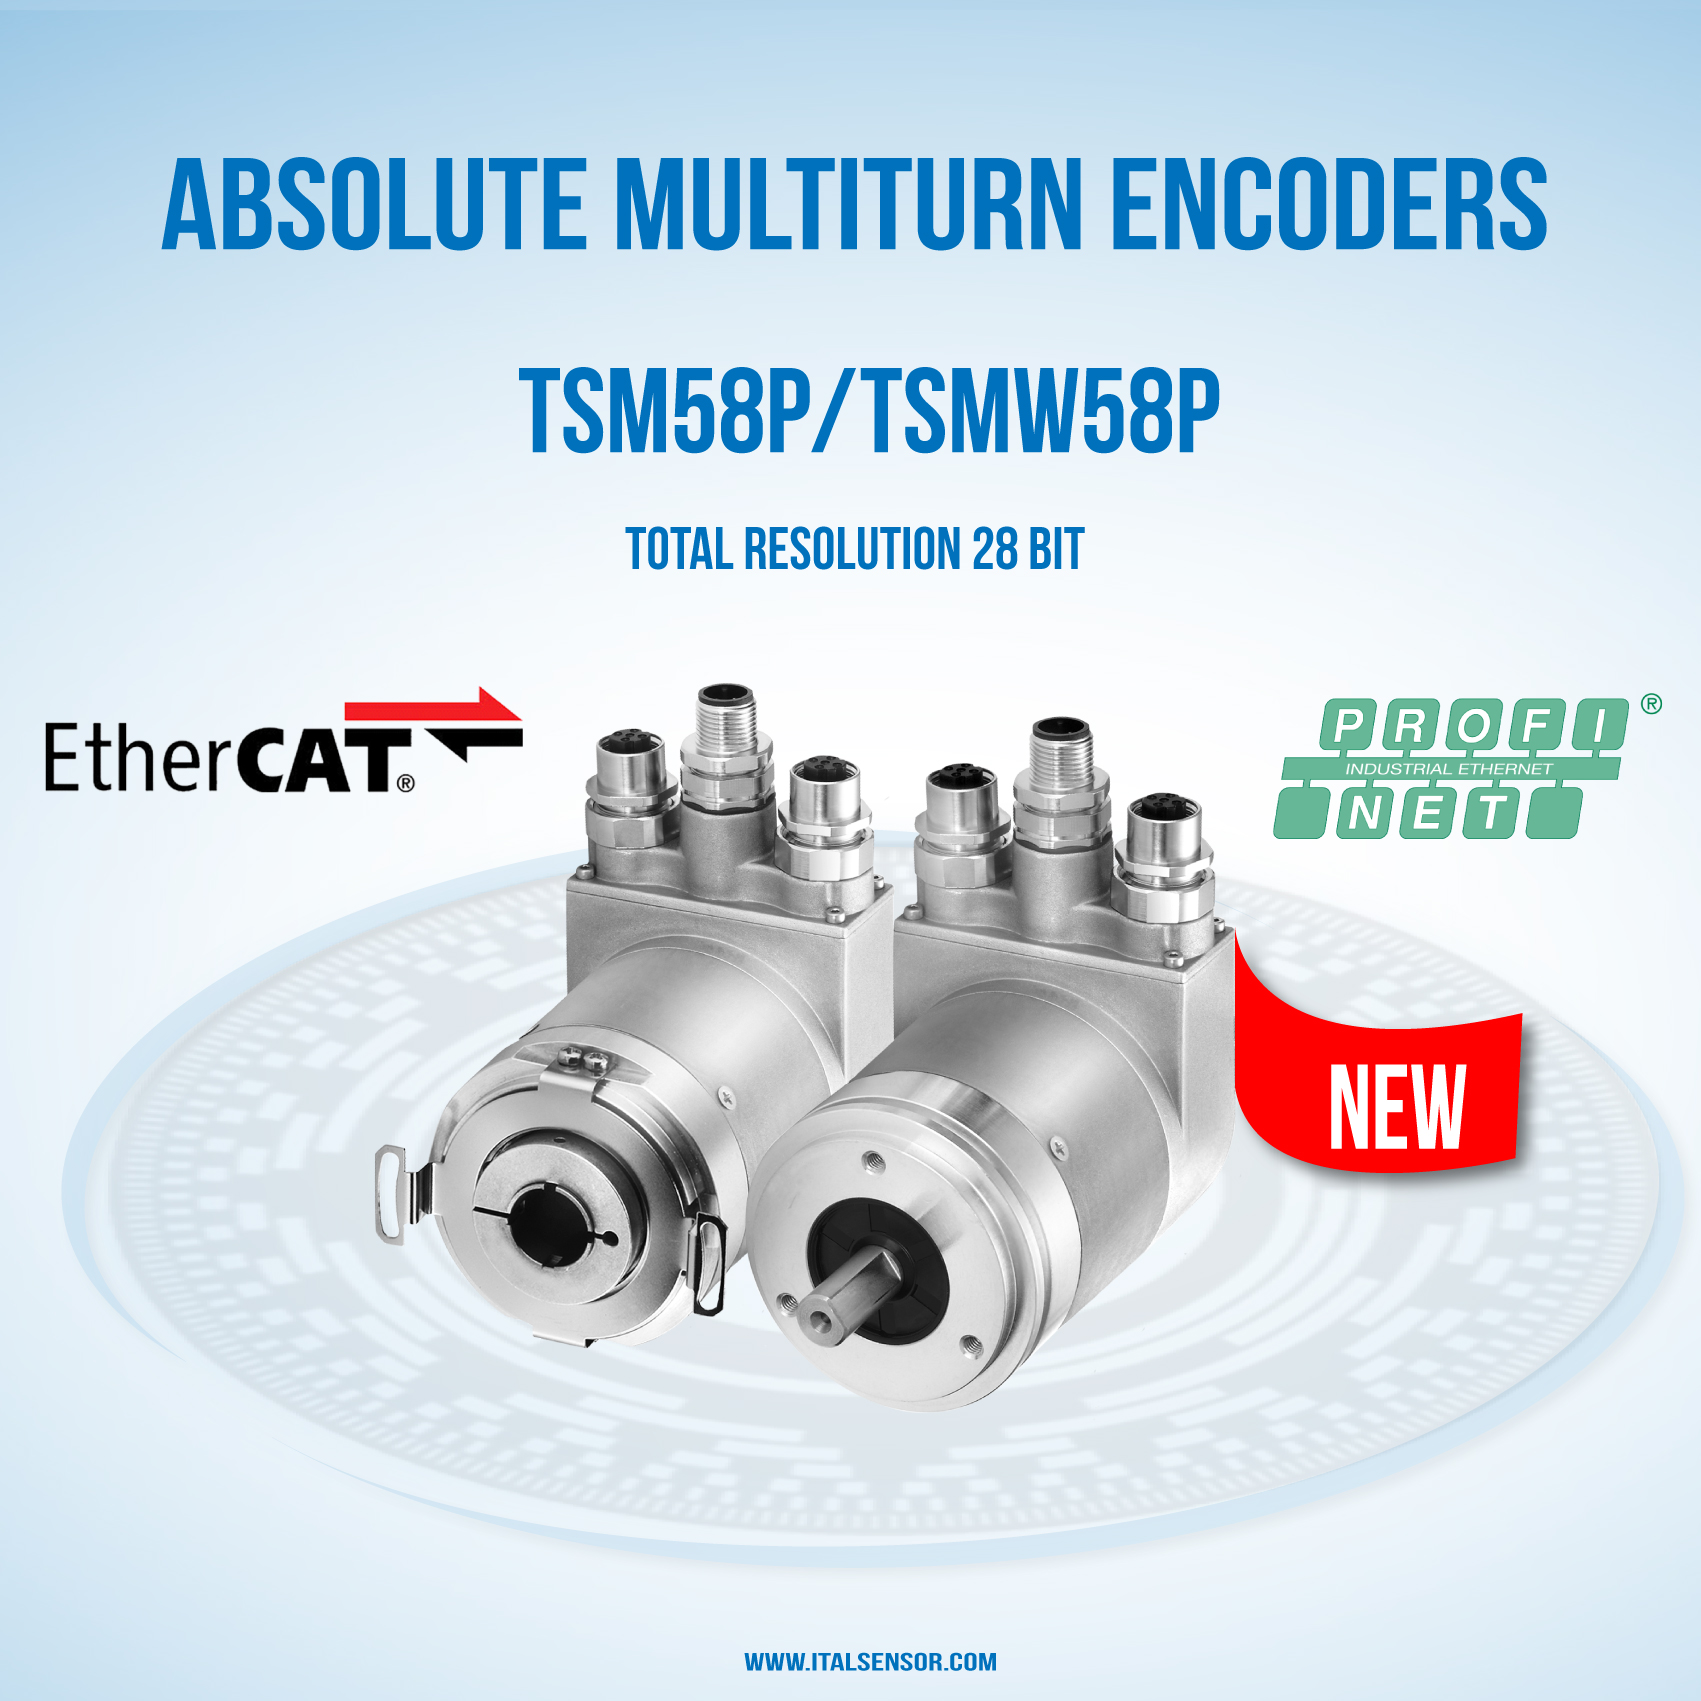 NEW ABSOLUTE ENCODER WITH ETHERCAT AND PROFINET | Italsensor